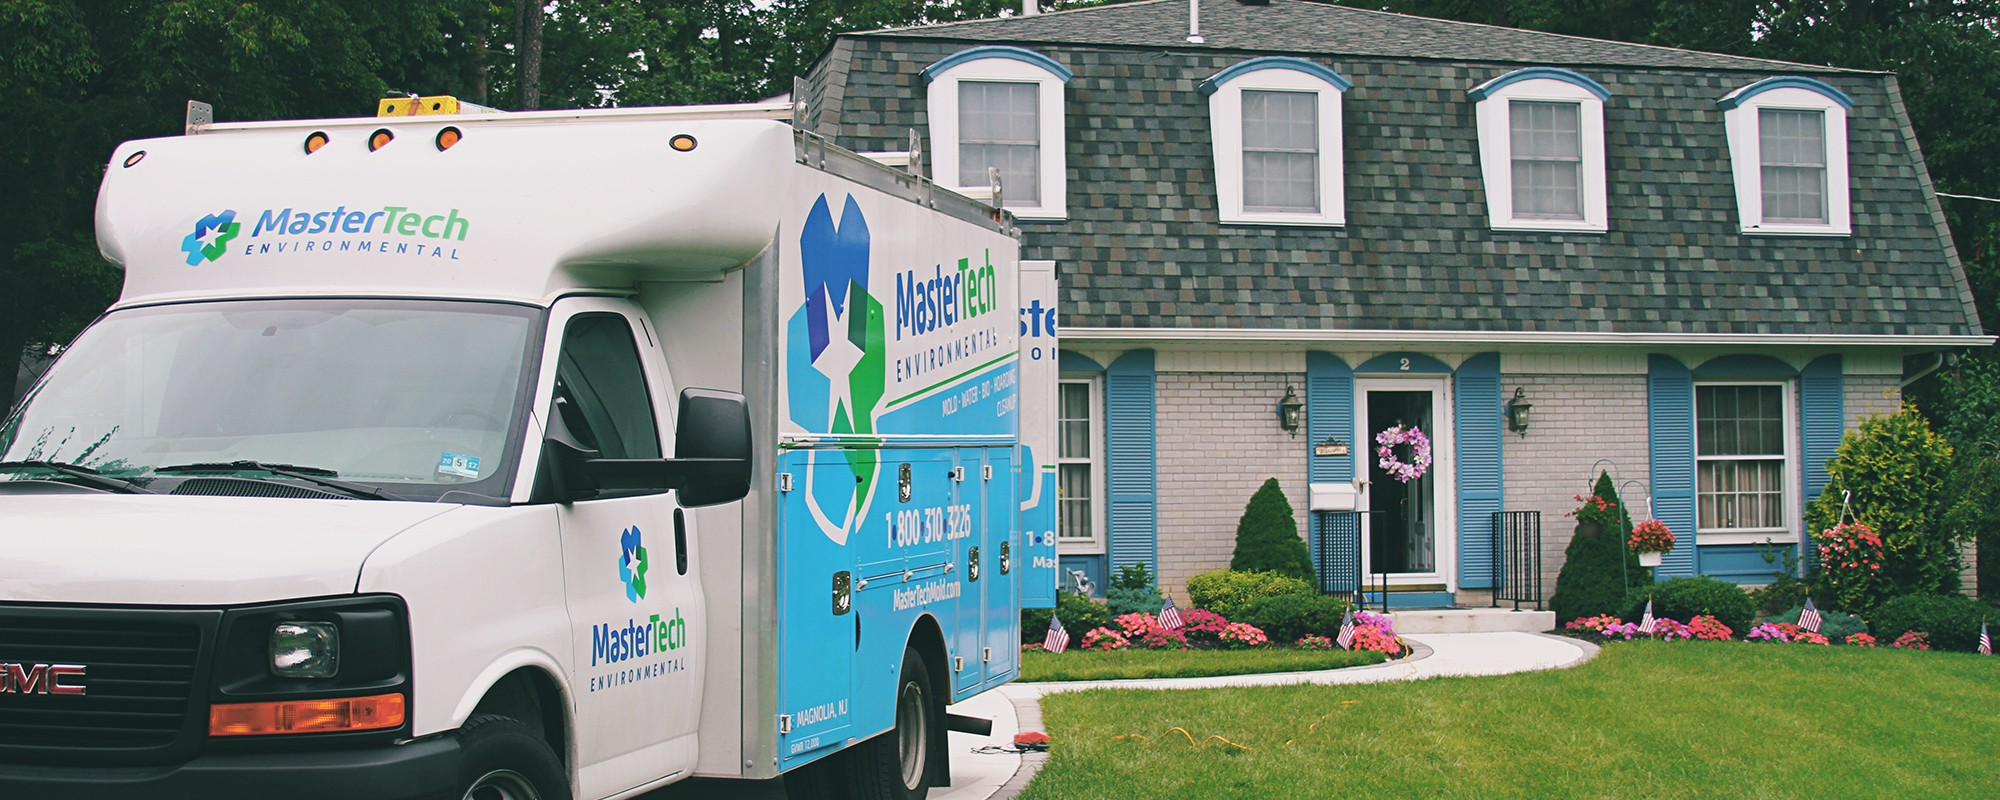 professional-water-extraction-nj